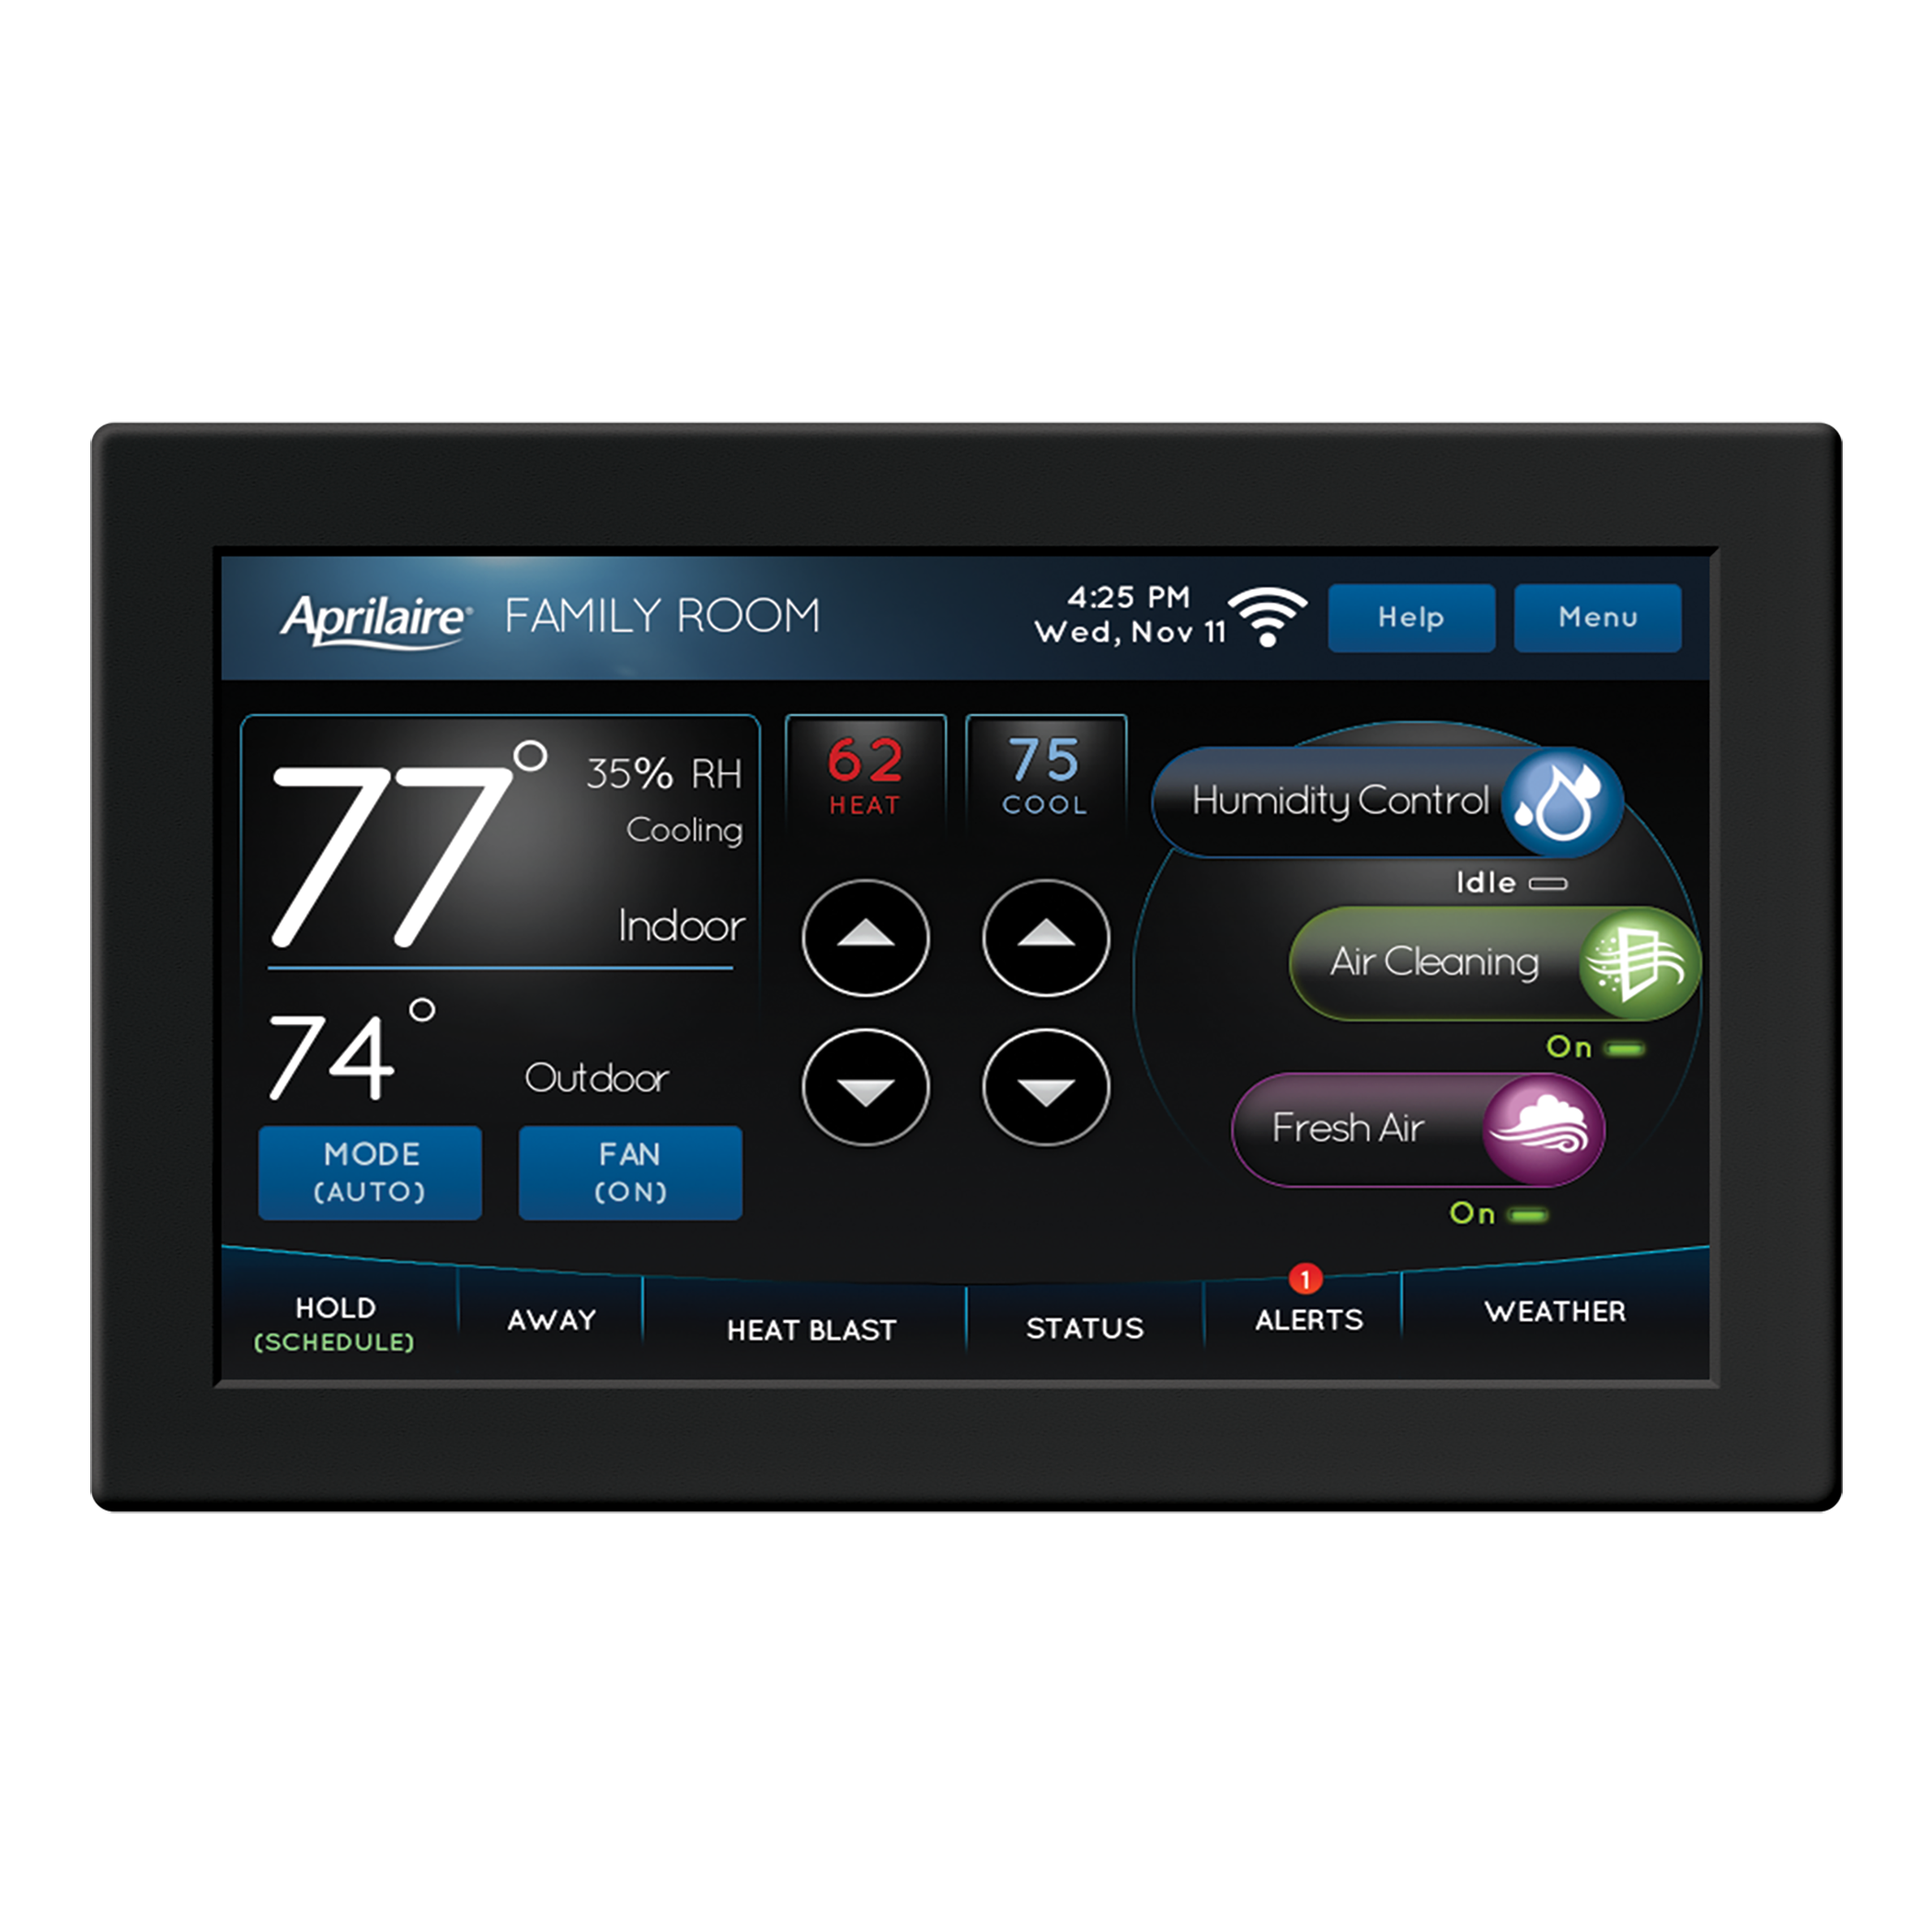 Aprilaire-Model-8920W-Thermostat-Control-Panel